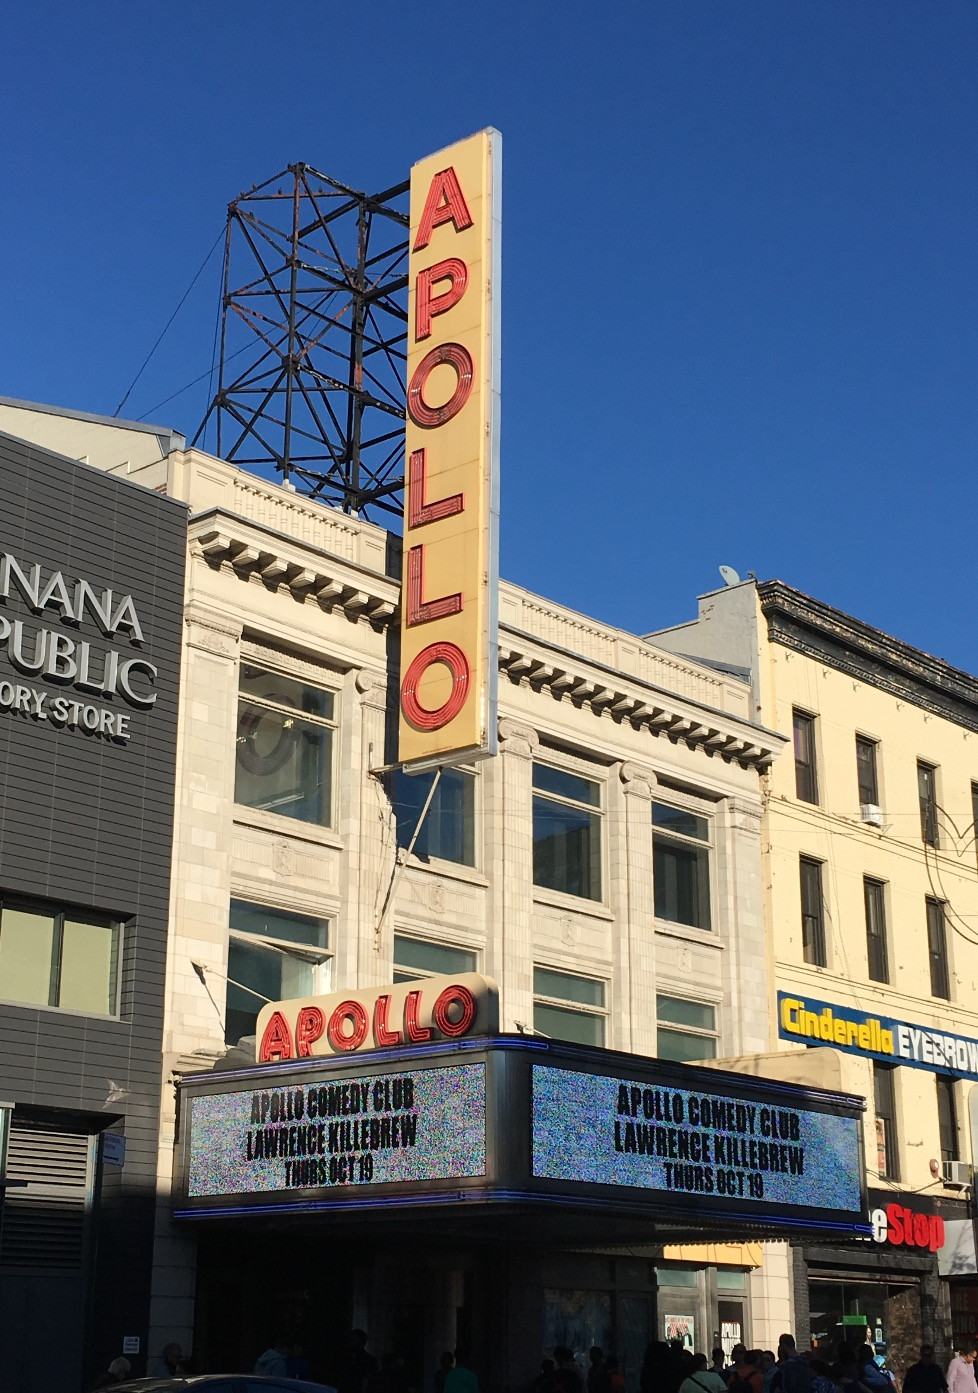 Apollo Theater neon sign